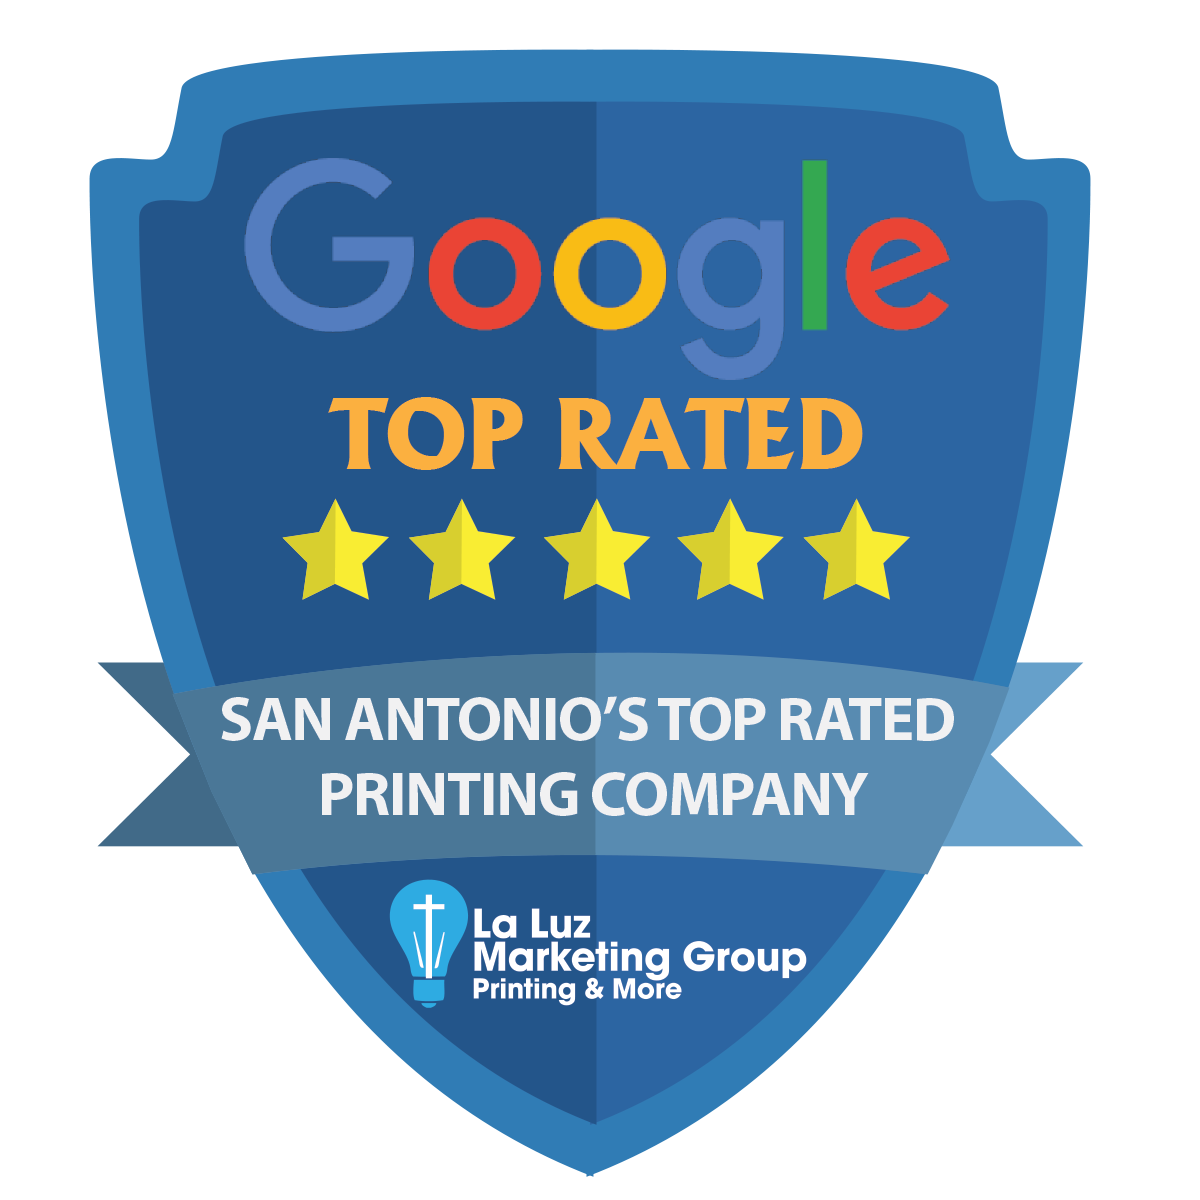 San Antonio Top Rated Printing Company